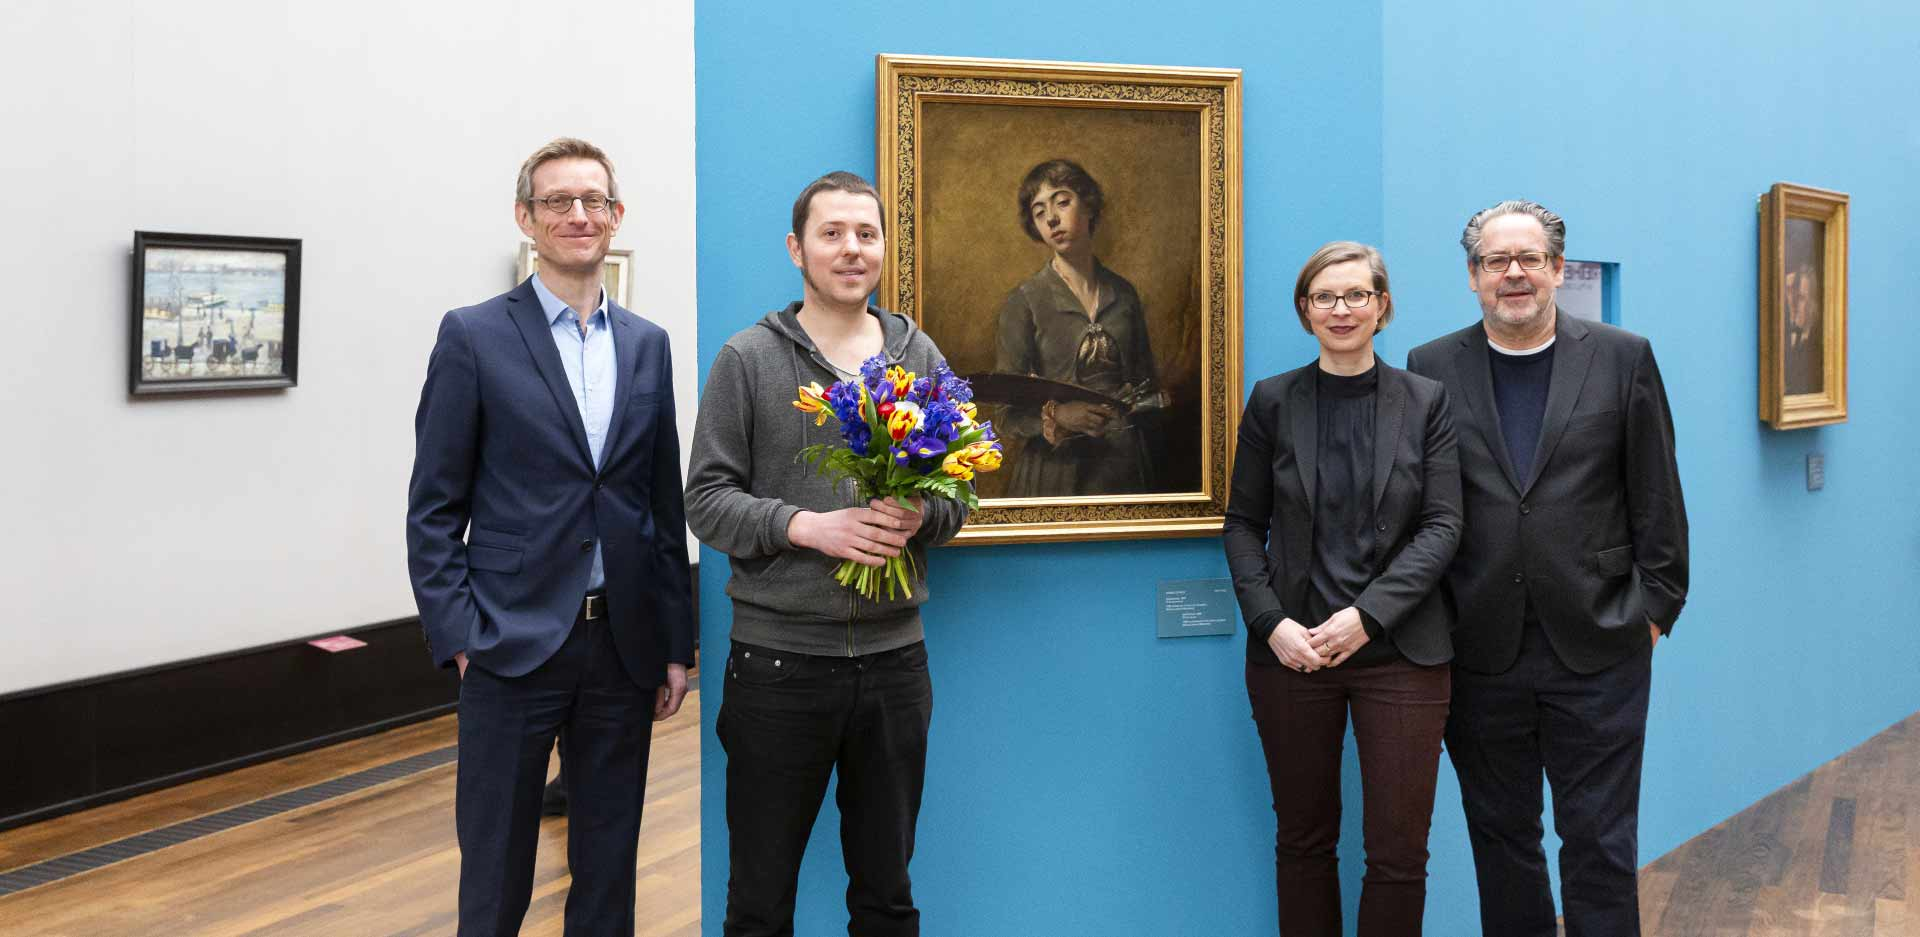 Ralph Gleis, head of the Alte Nationalgalerie; Antoine Pihier, 125,000th visitor to the exhibition Fighting for Visibility: Women Artists in the Nationalgalerie before 1919; Yvette Deseyve, curator for sculpture and the plastic arts at the Alte Nationalgalerie; and Udo Kittelmann, director of the Nationalgalerie (from left to right)